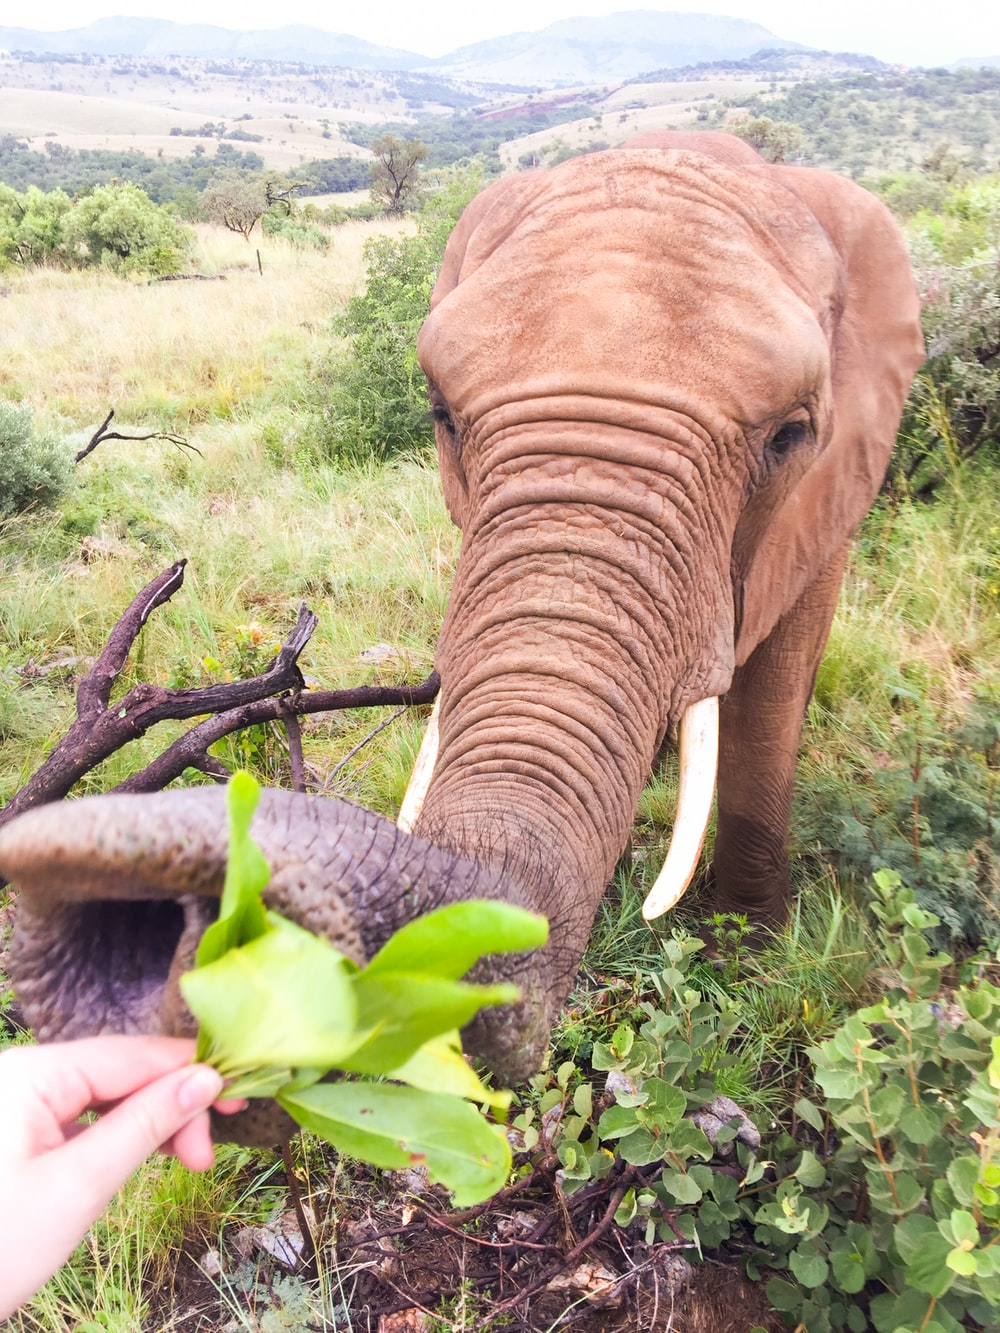 brown elephant eating green plant during daytime